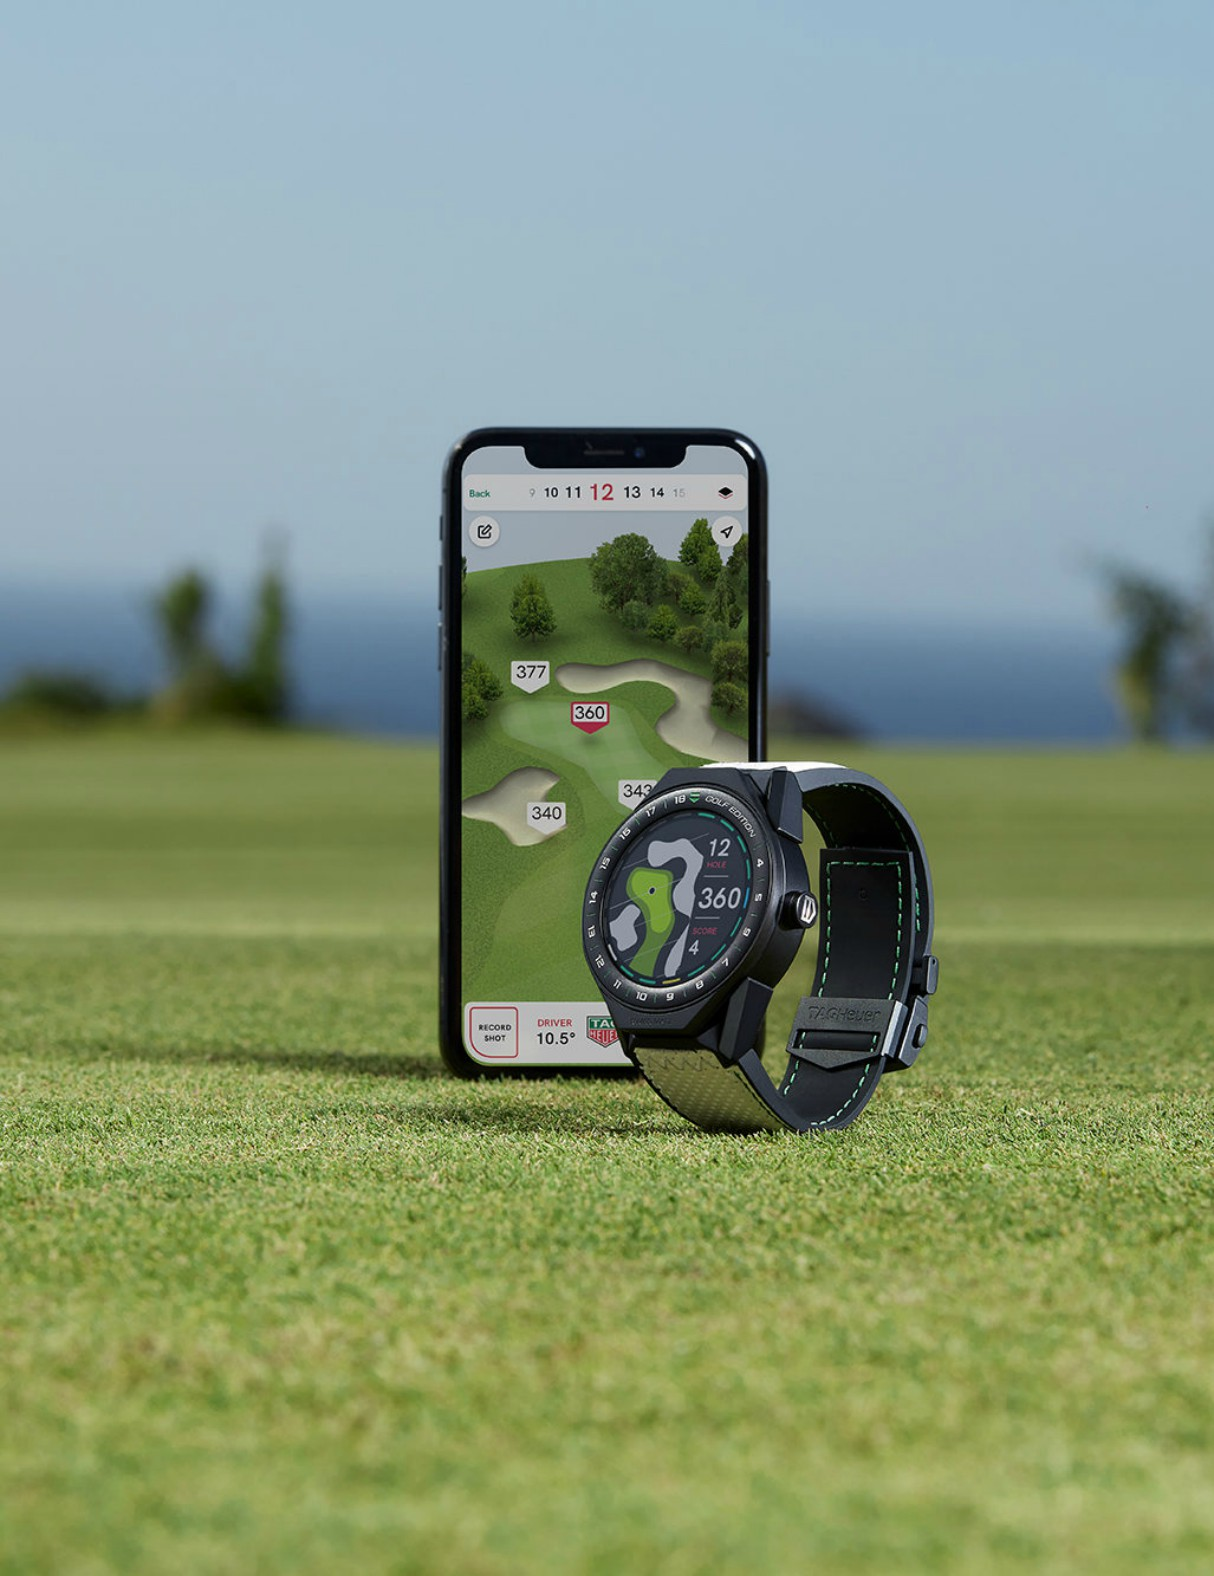 tag-heuer-connected-golf-watch-5